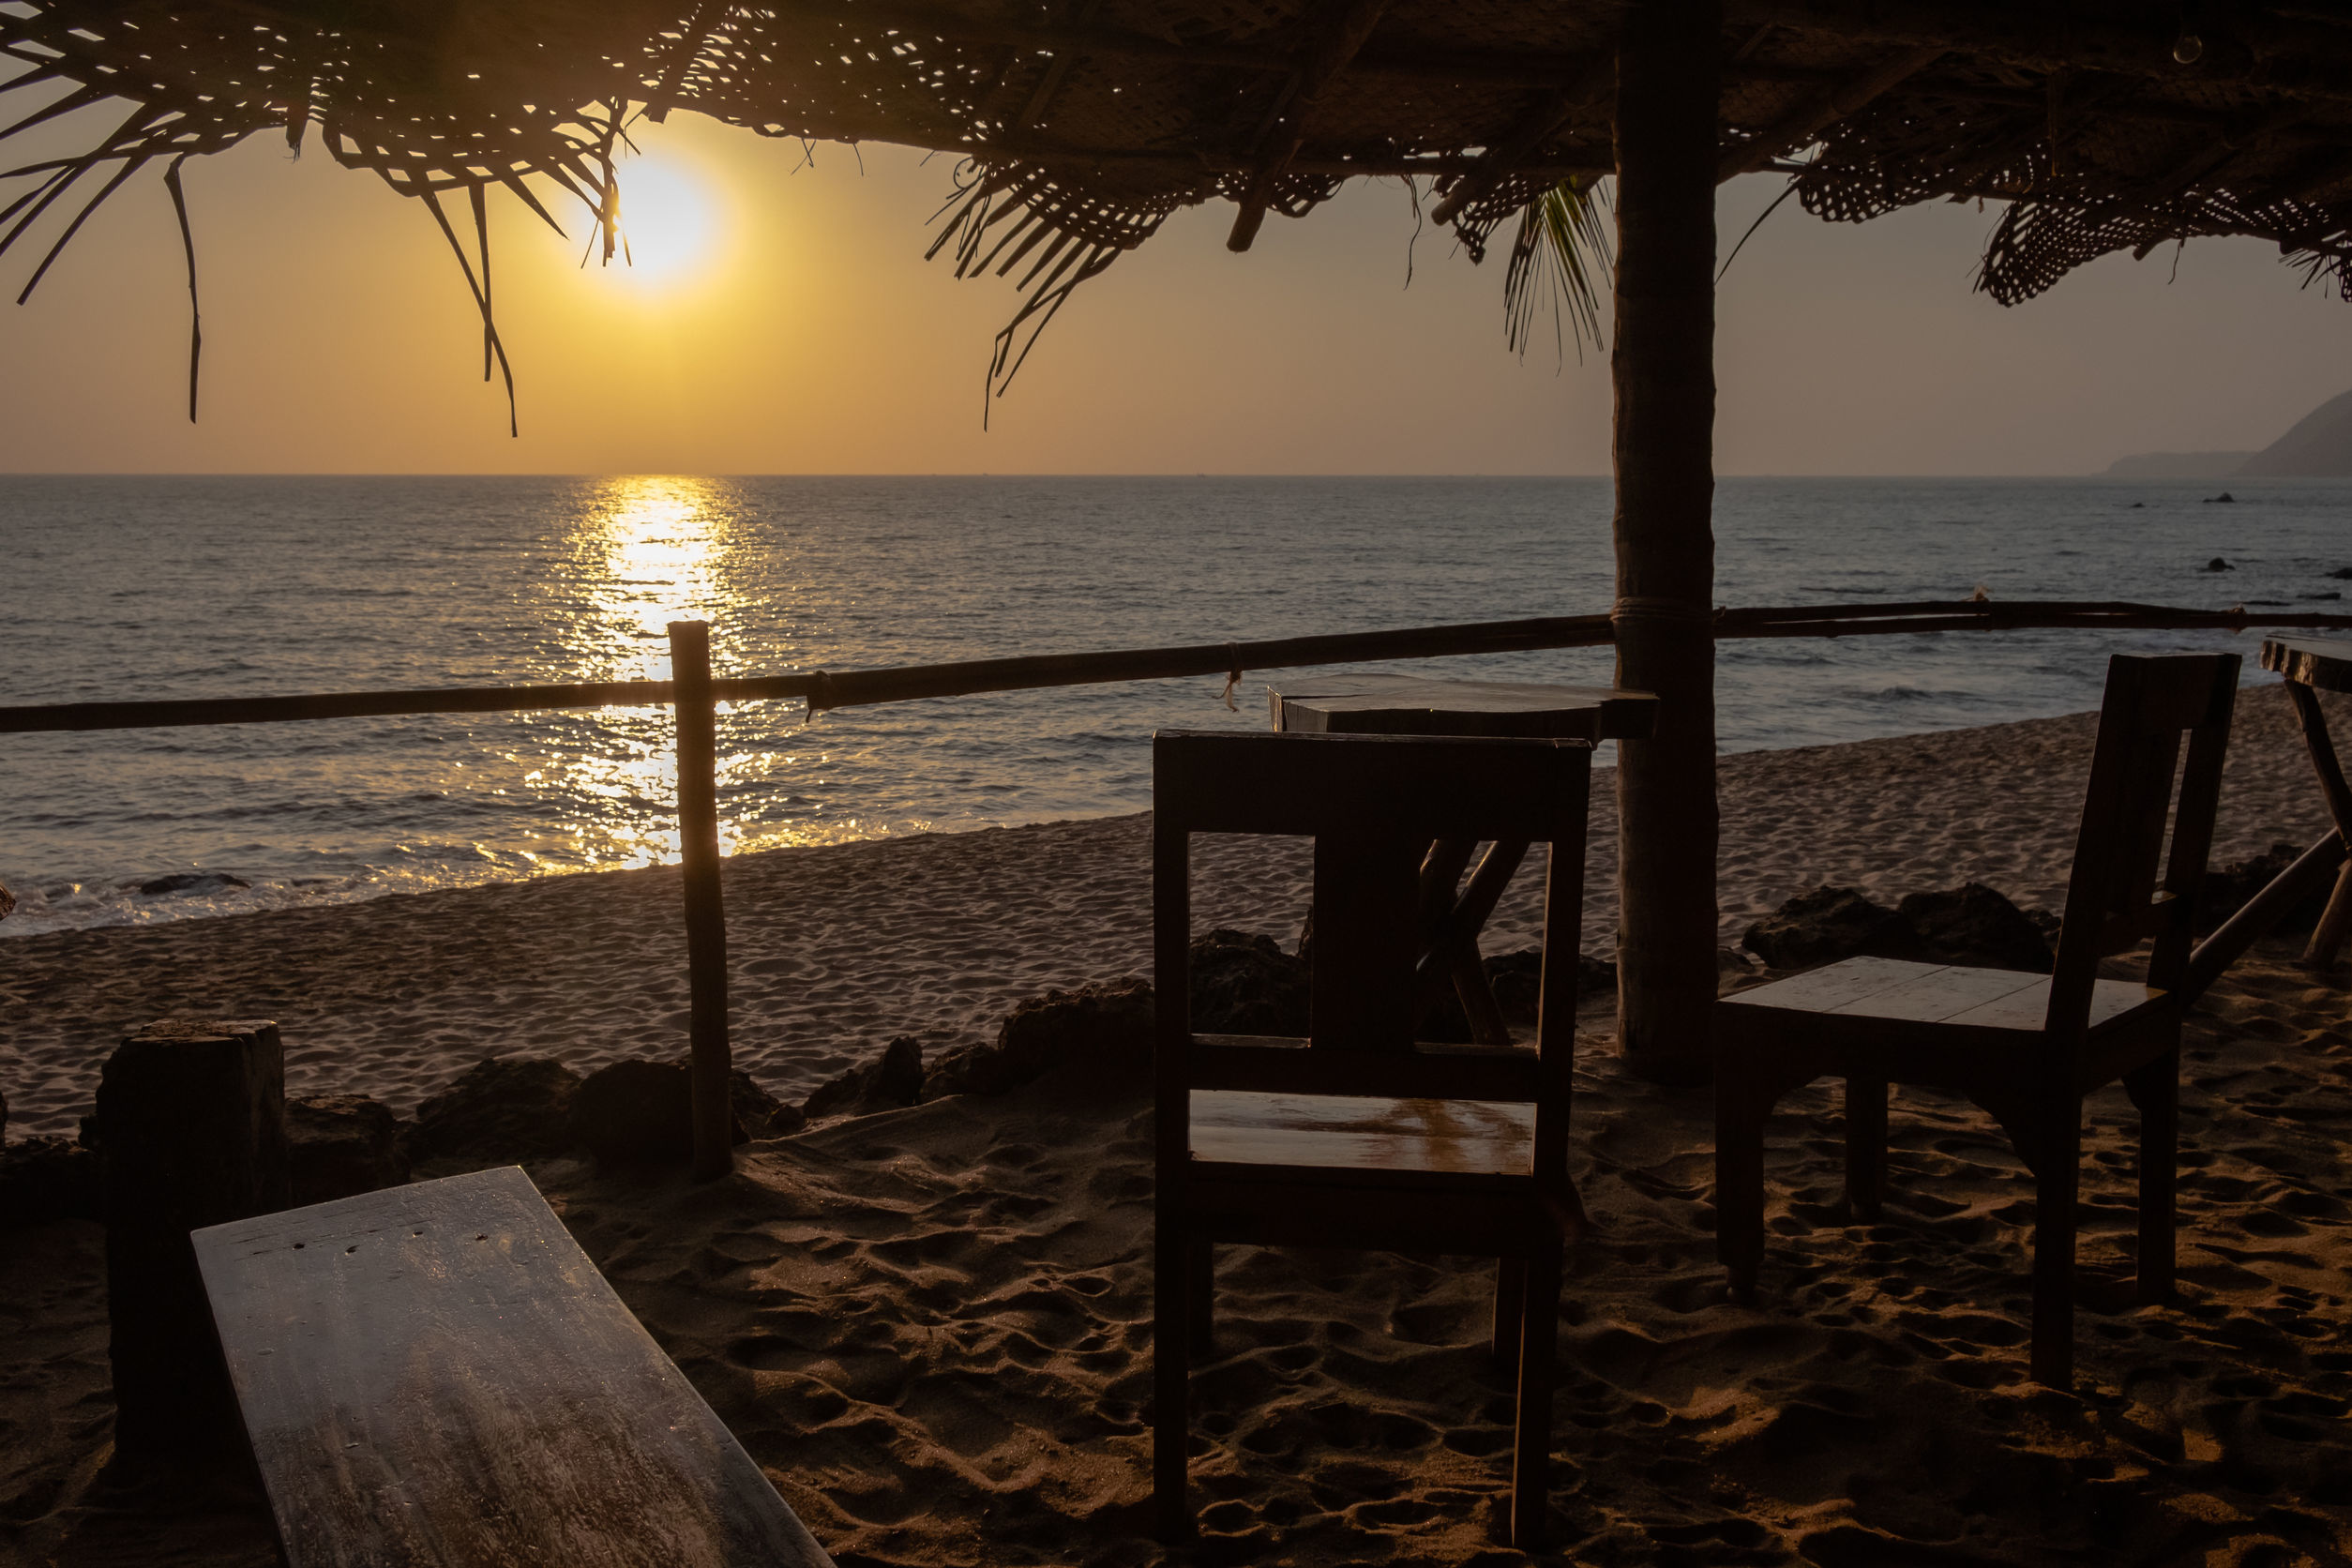 An empty wooden bar on the beach at sunset